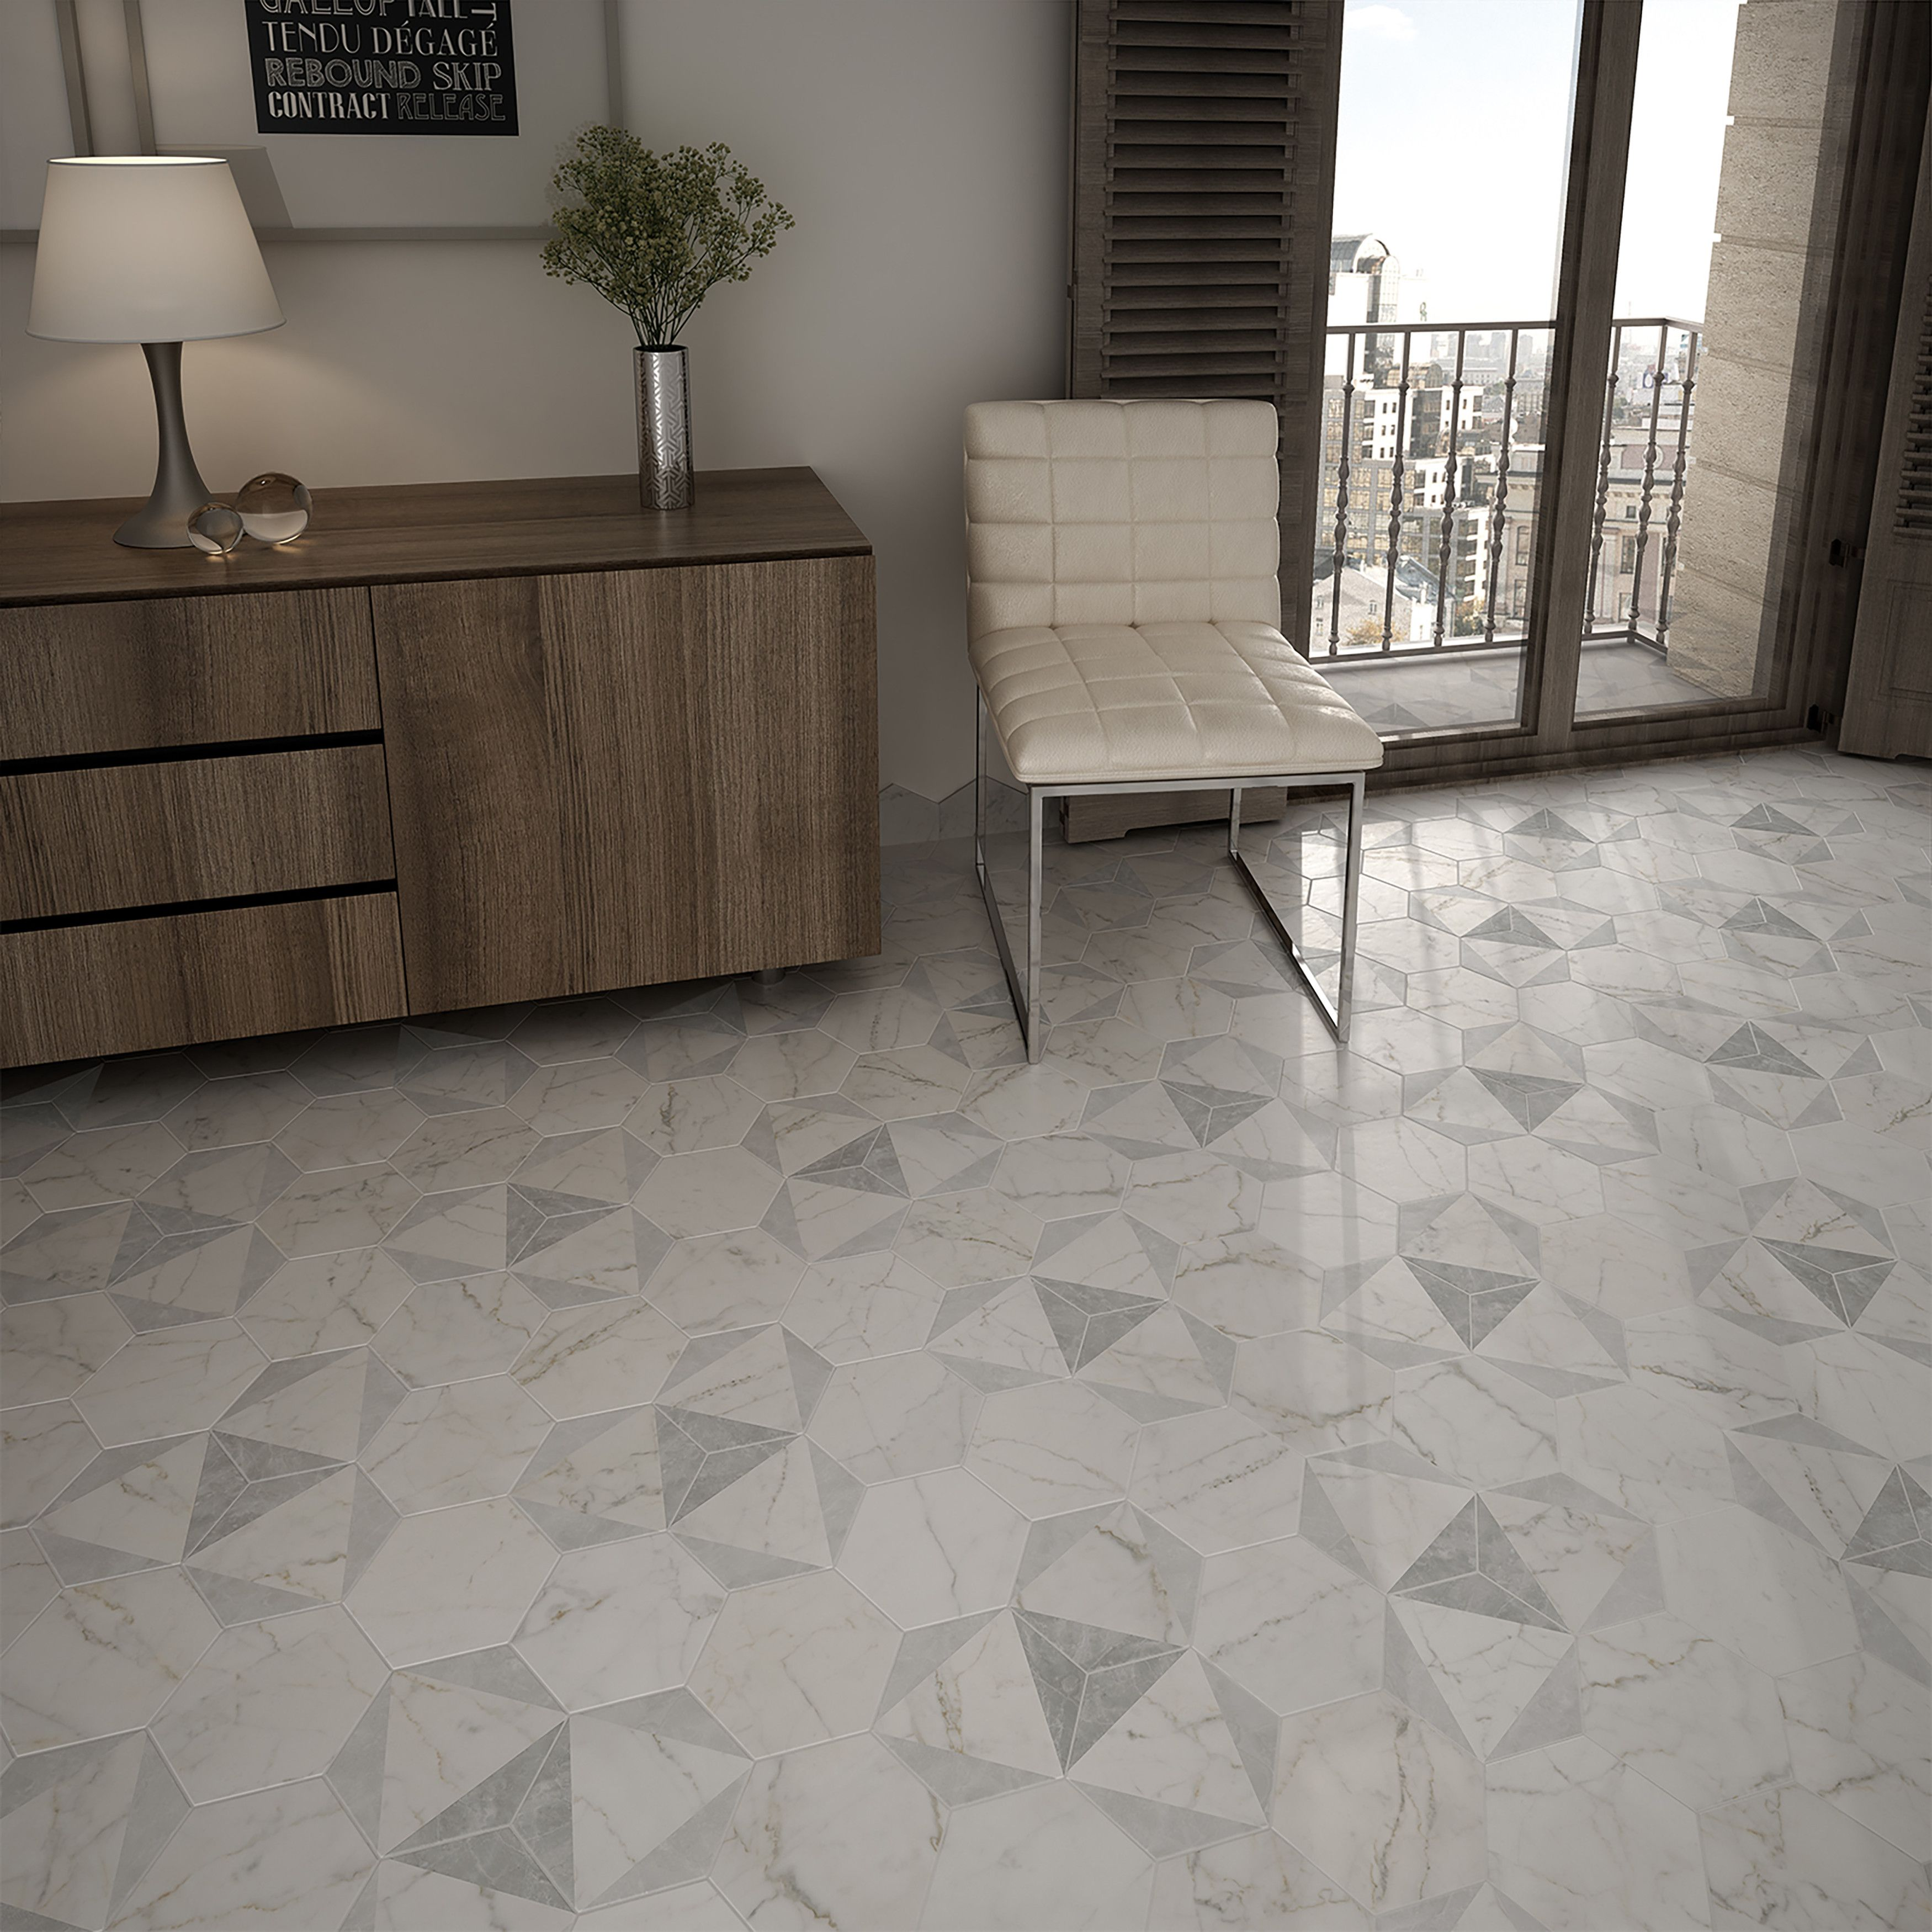 Elitetile karra 7 x 8 hexagon porcelain field tile tile somertile carra hexagon peak porcelain floor and wall tile sqft dailygadgetfo Image collections